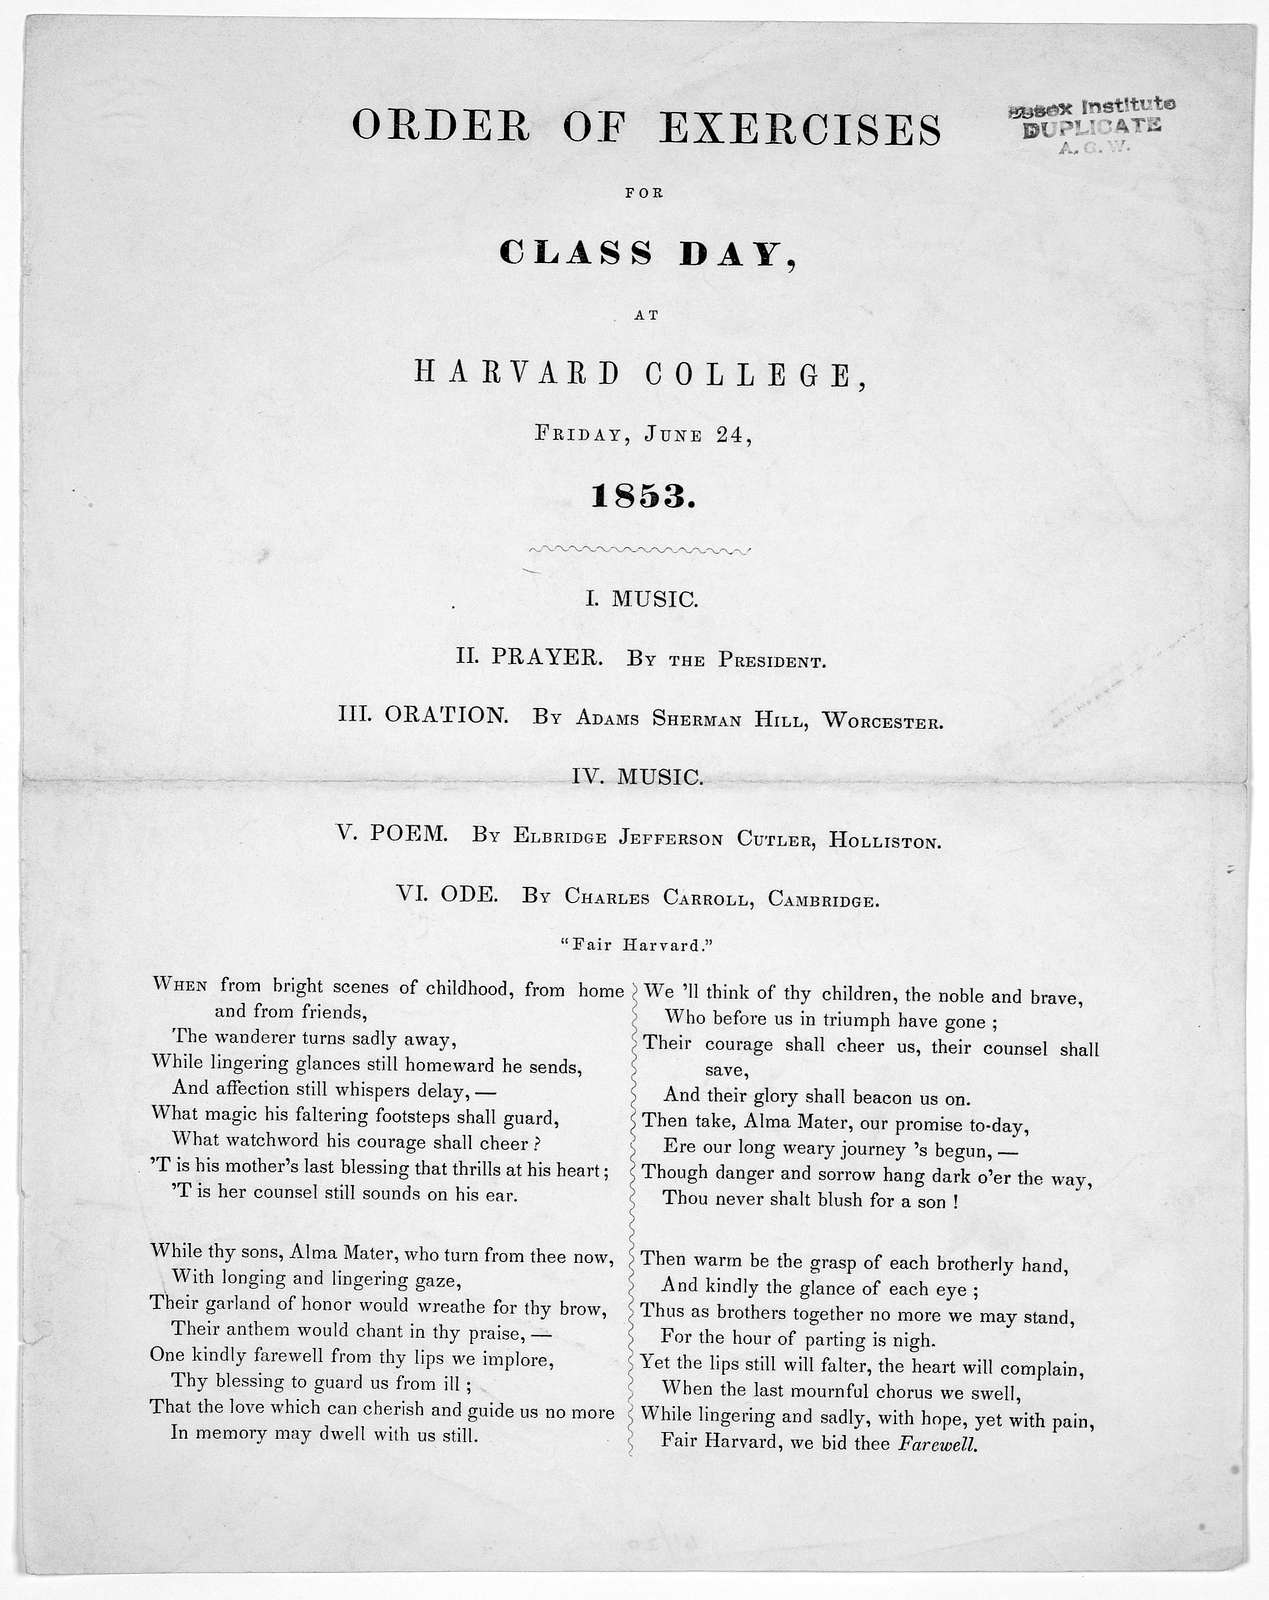 Order of exercises for class day, at Harvard College, Friday, June 24, 1853.